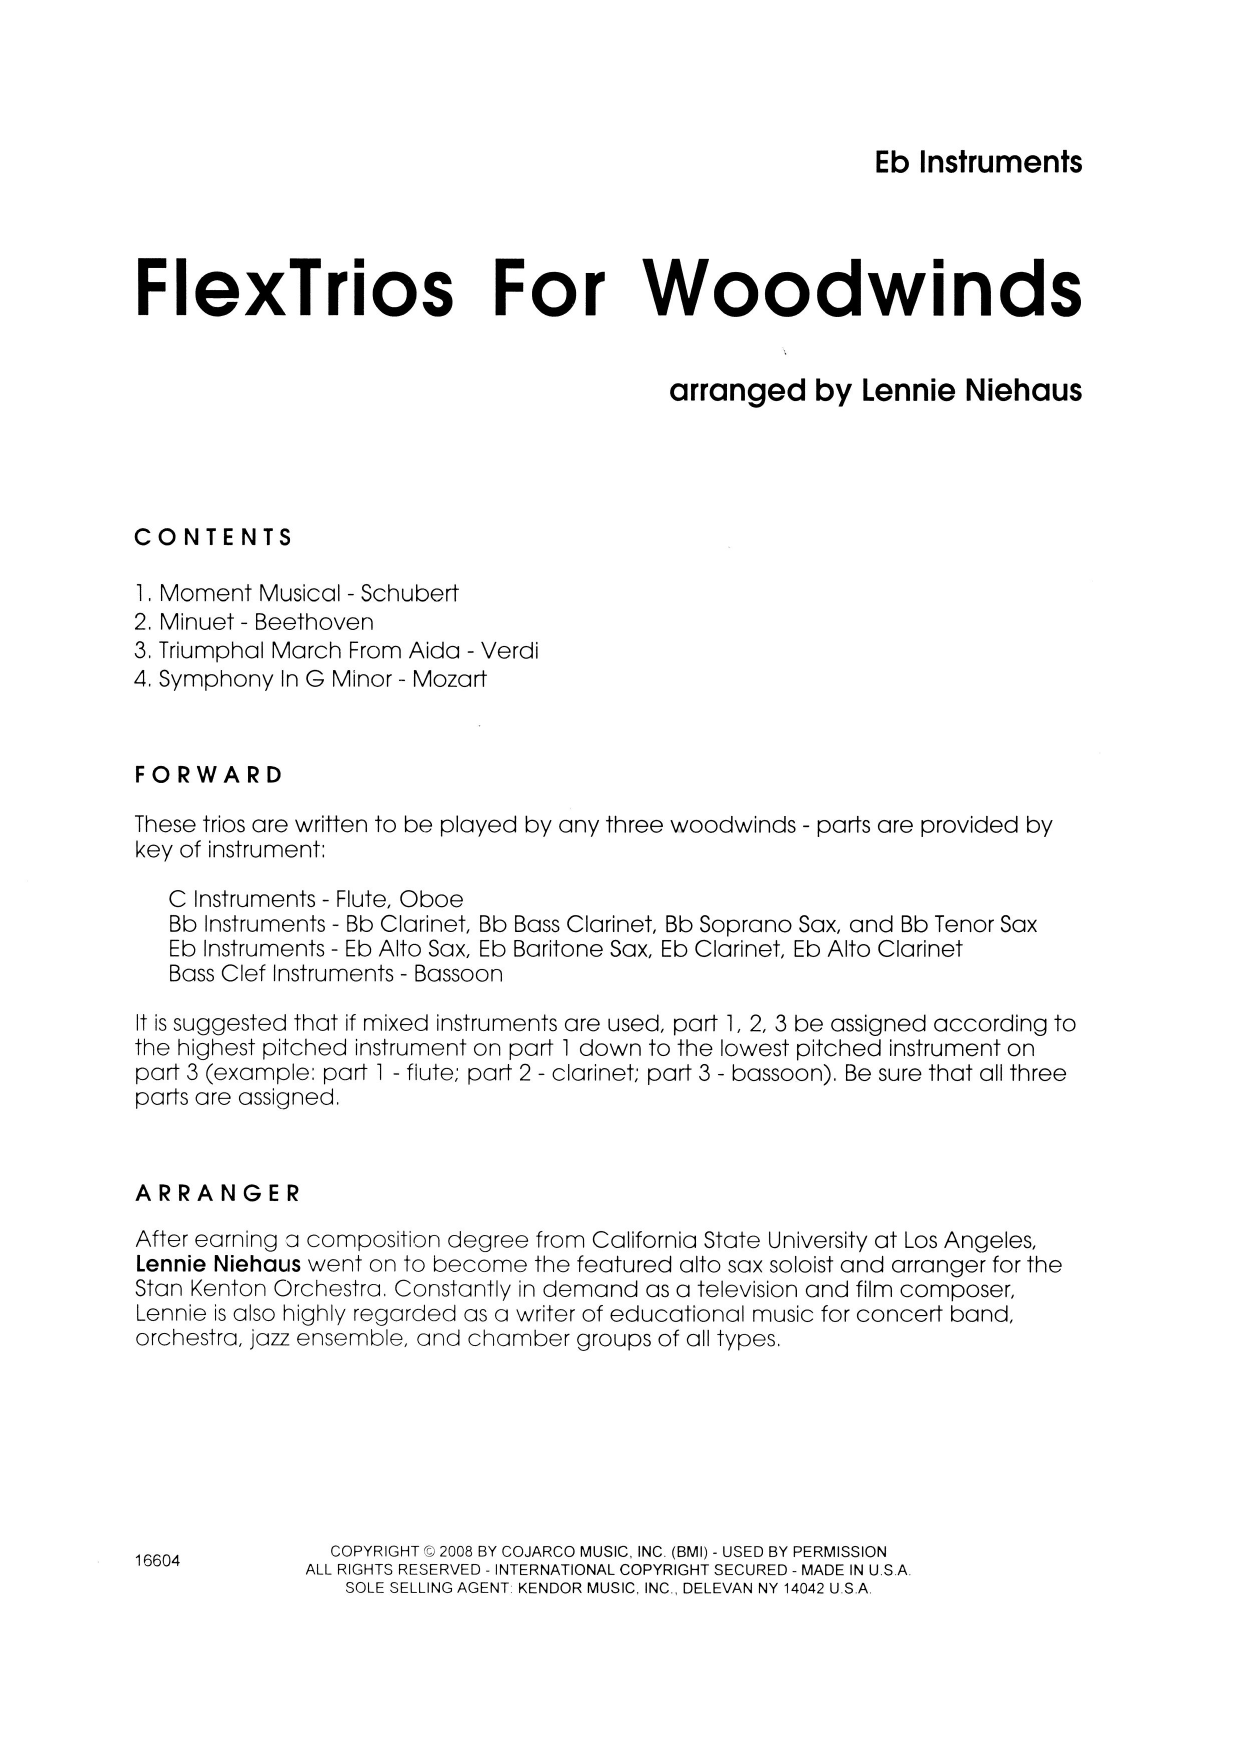 FlexTrios For Woodwinds (playable by any three woodwind instruments) - Eb Instruments Sheet Music